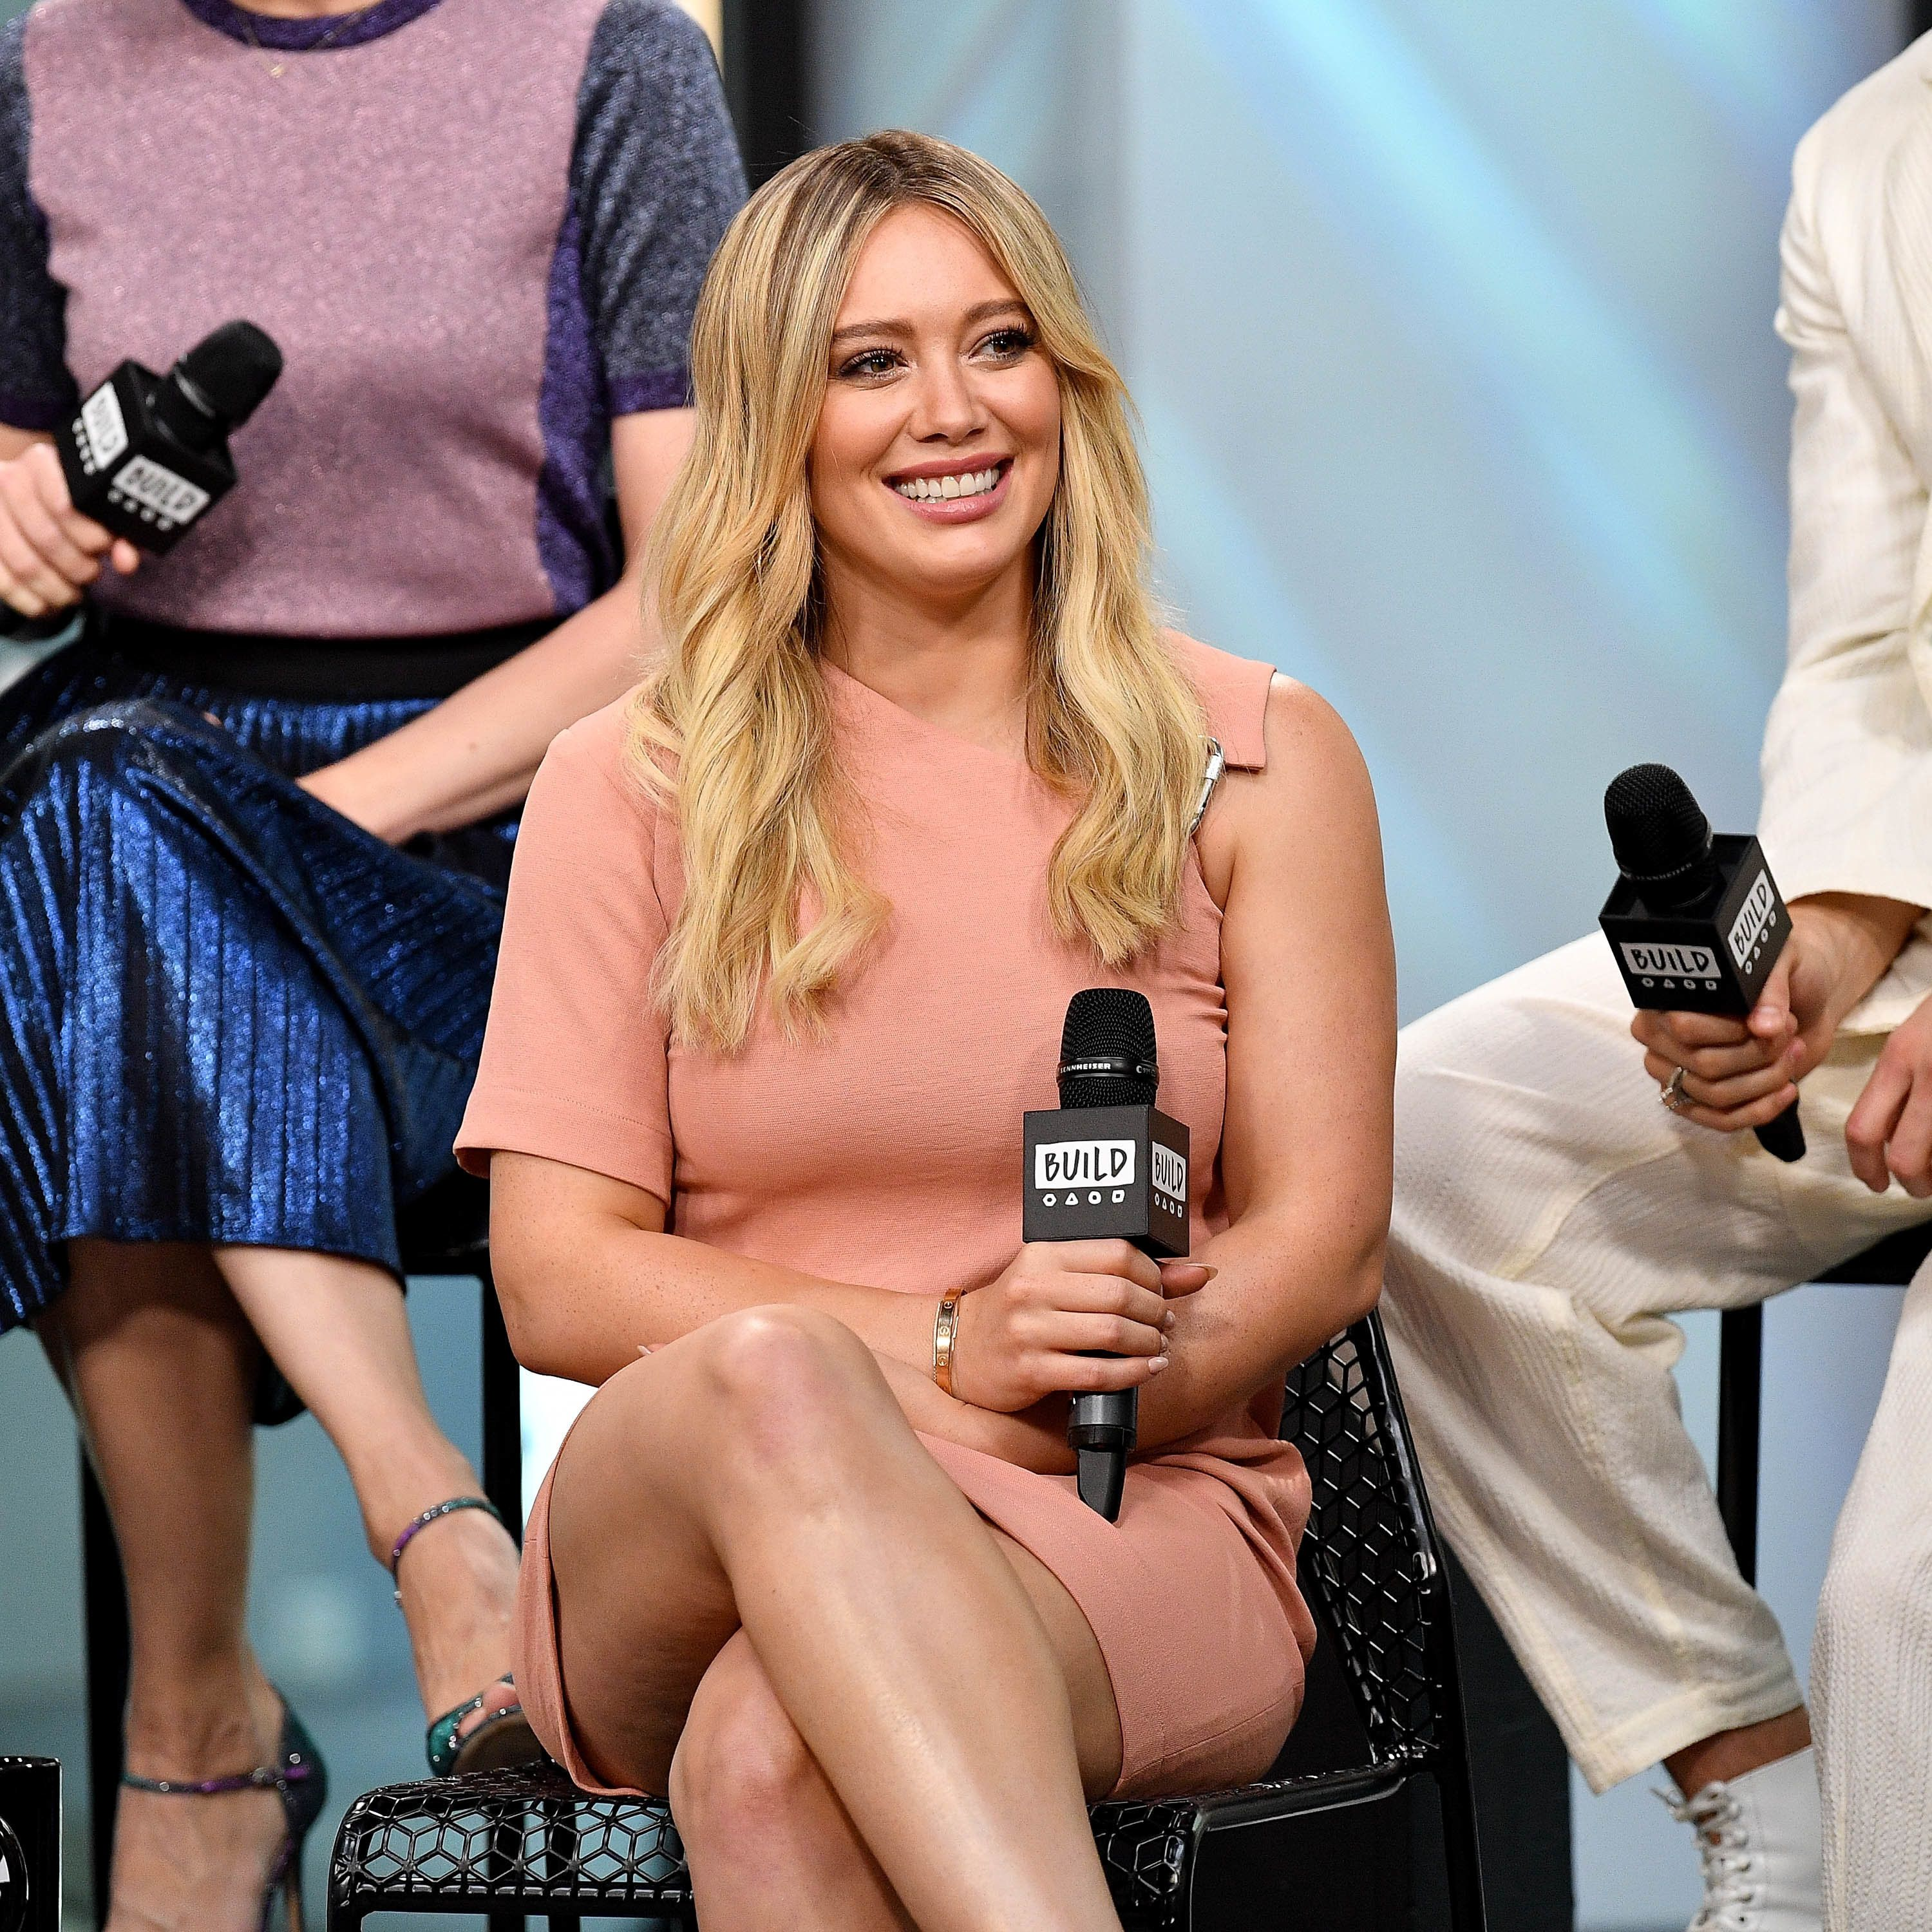 NEW YORK, NY - JUNE 27:  Hilary Duff visits Build to discuss 'Younger' at Build Studio on June 27, 2017 in New York City.  (Photo by Dia Dipasupil/Getty Images)